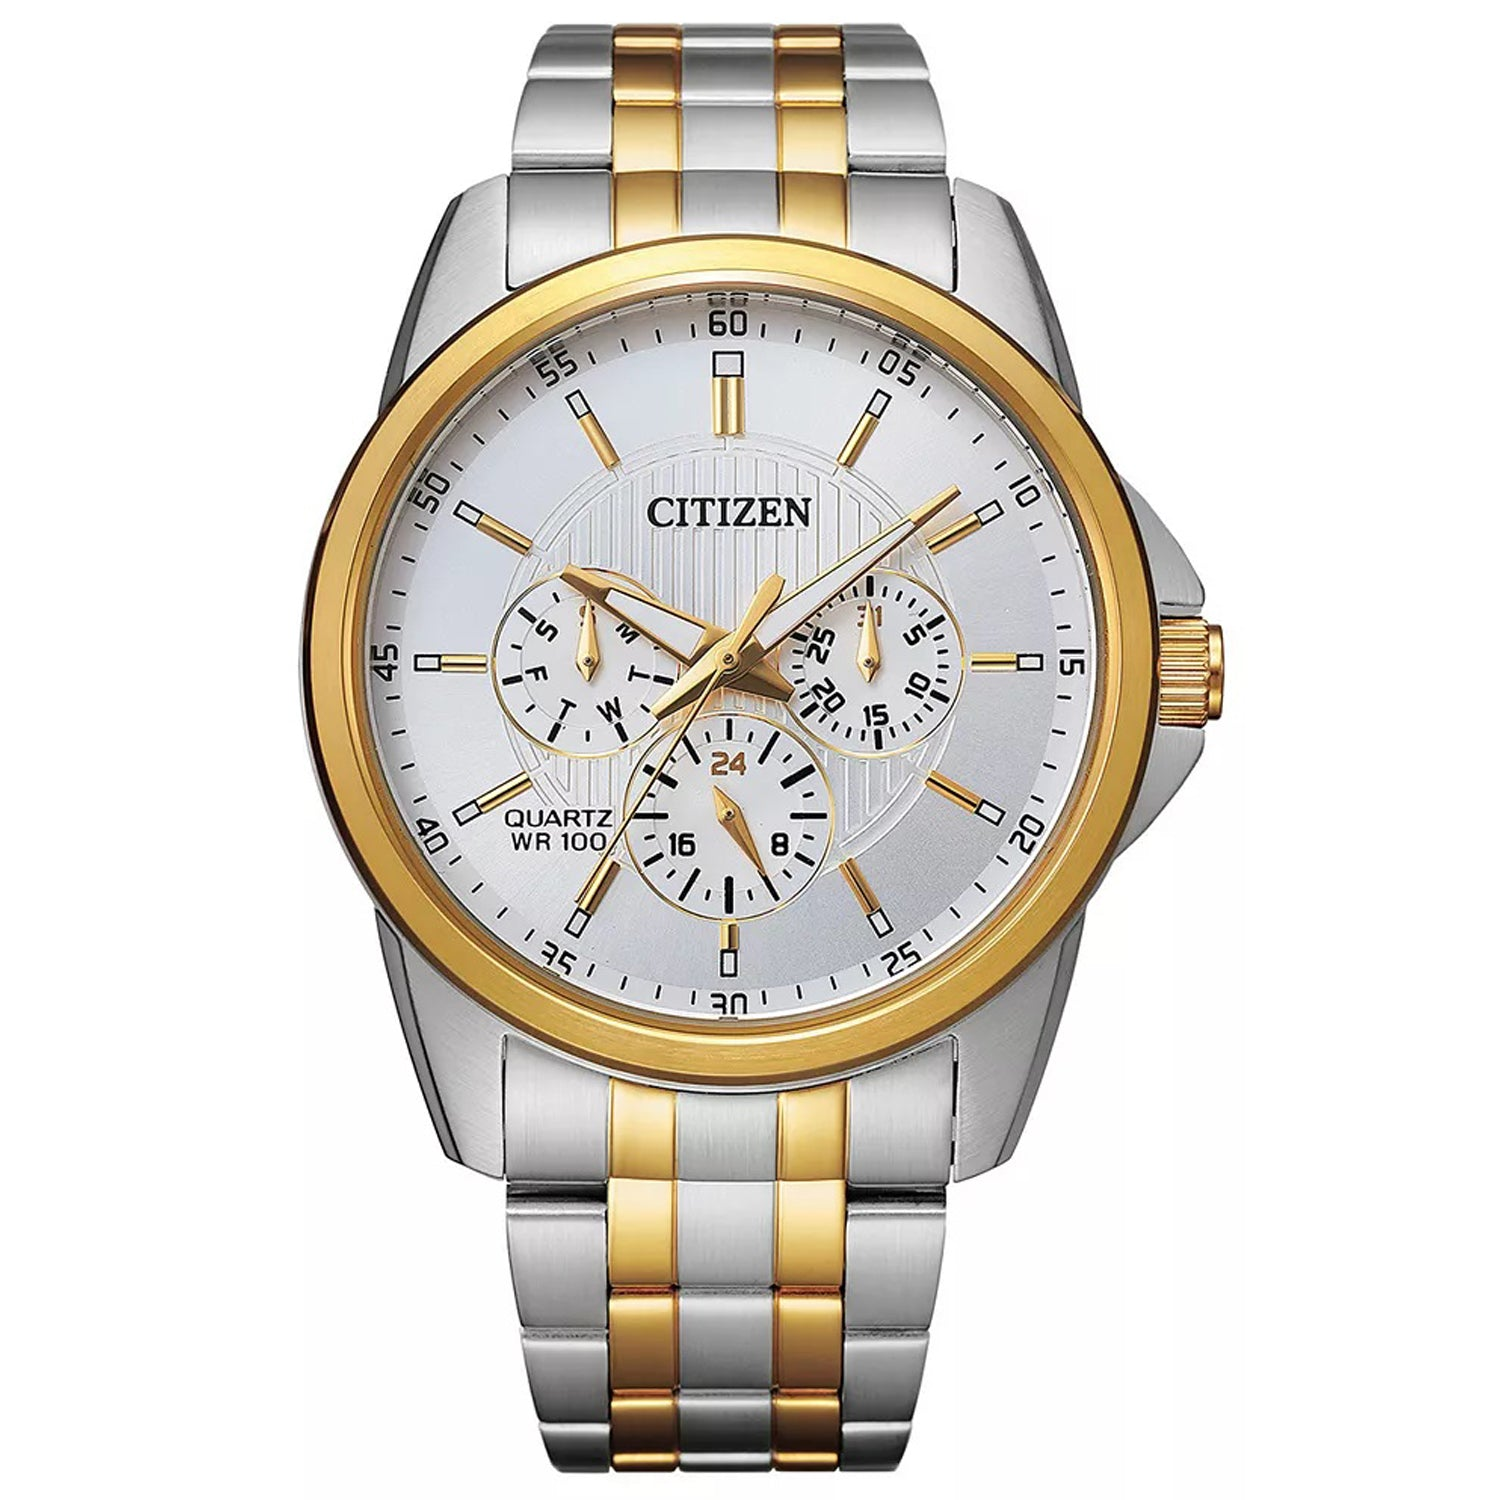 Citizen MENS TWO TONE STAINLESS STEEL CHRONOGRAPH WATCH